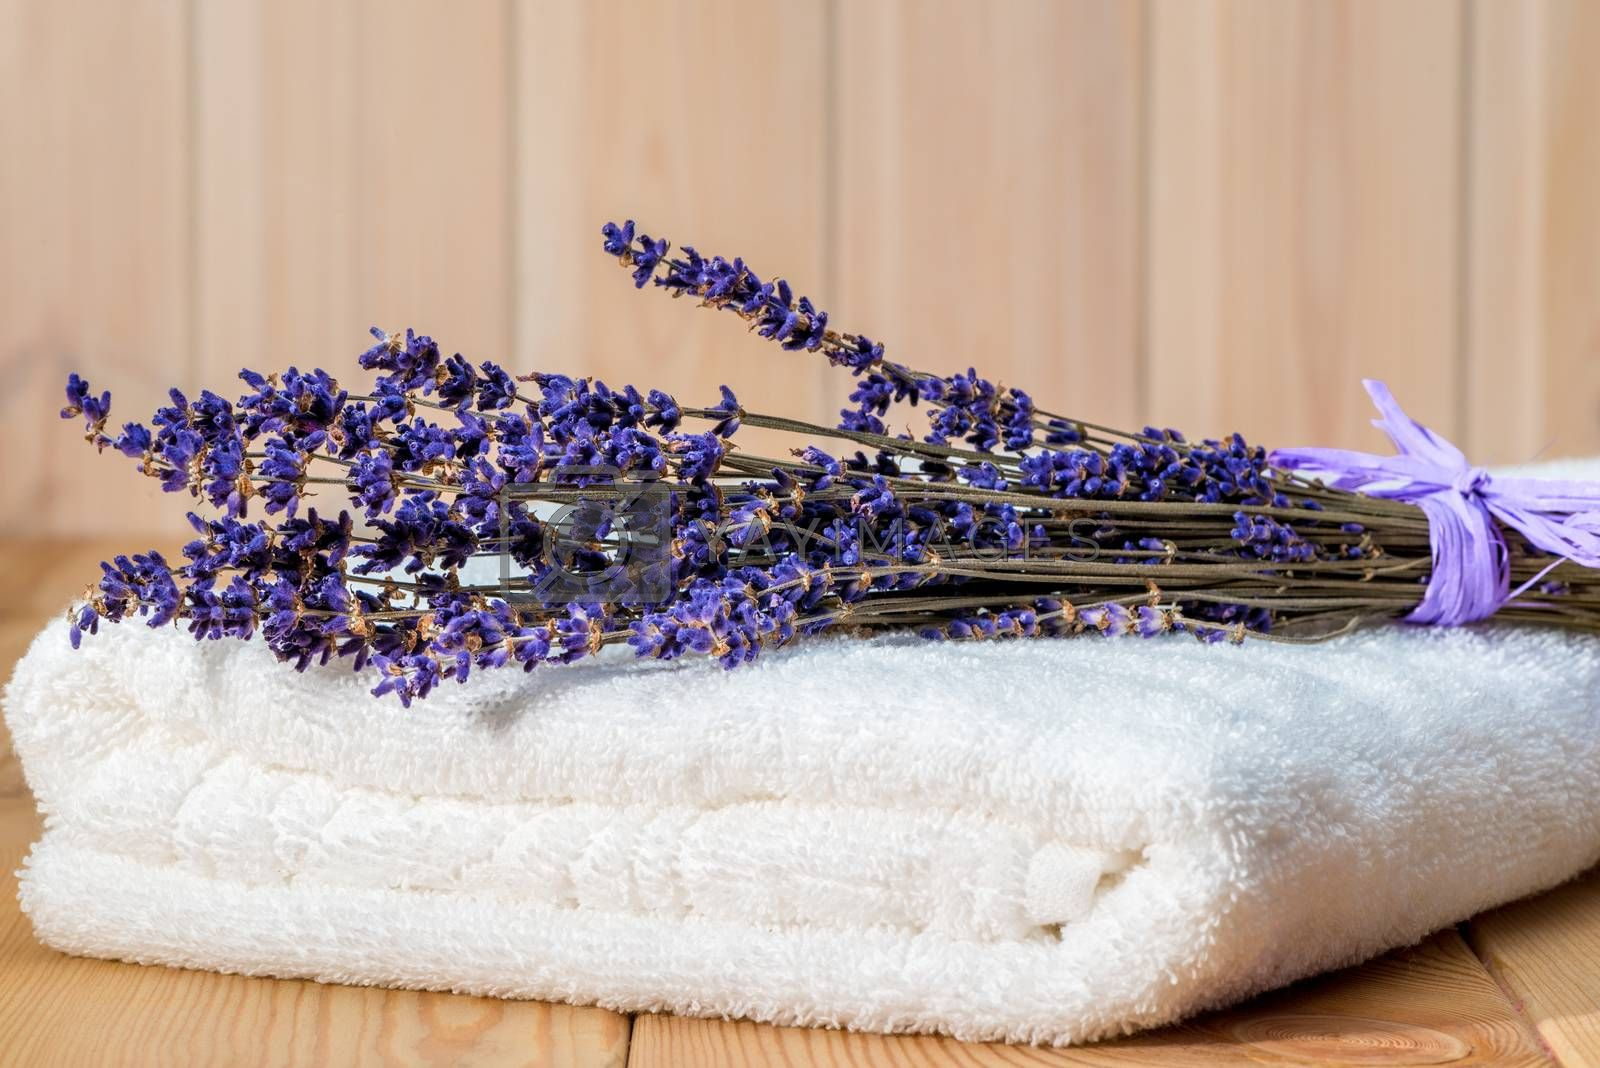 bunch of dry lavender on a white terry towel close up by Labunskiy K.